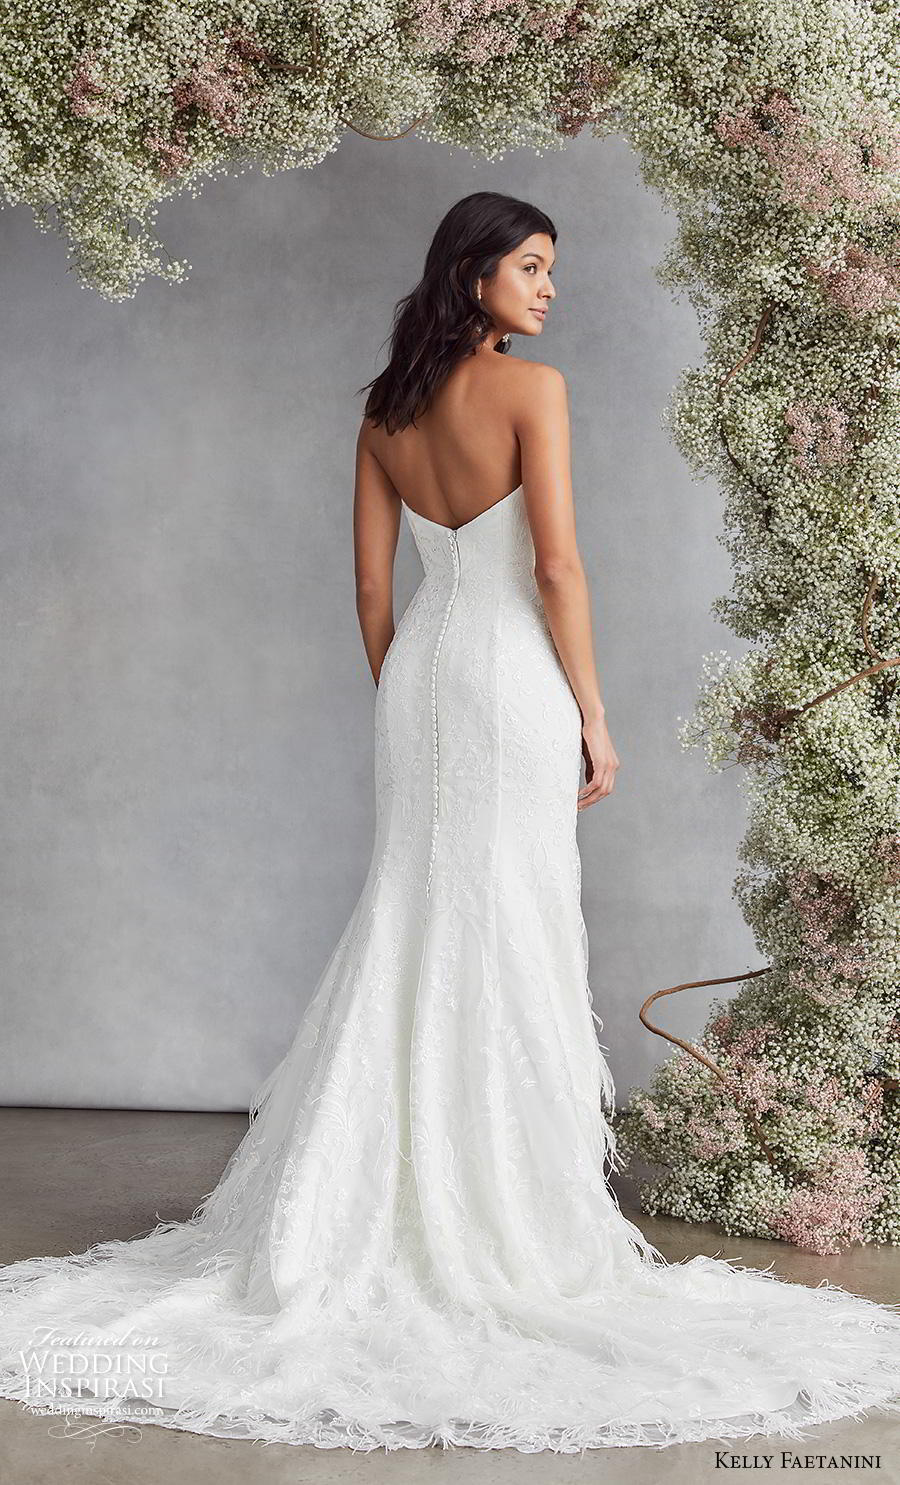 kelly faetanini fall 2020 bridal strapless deep plunging sweetheart neckline full embellishment elegant romantic fit and flare wedding dress mid back chapel train (8) bv